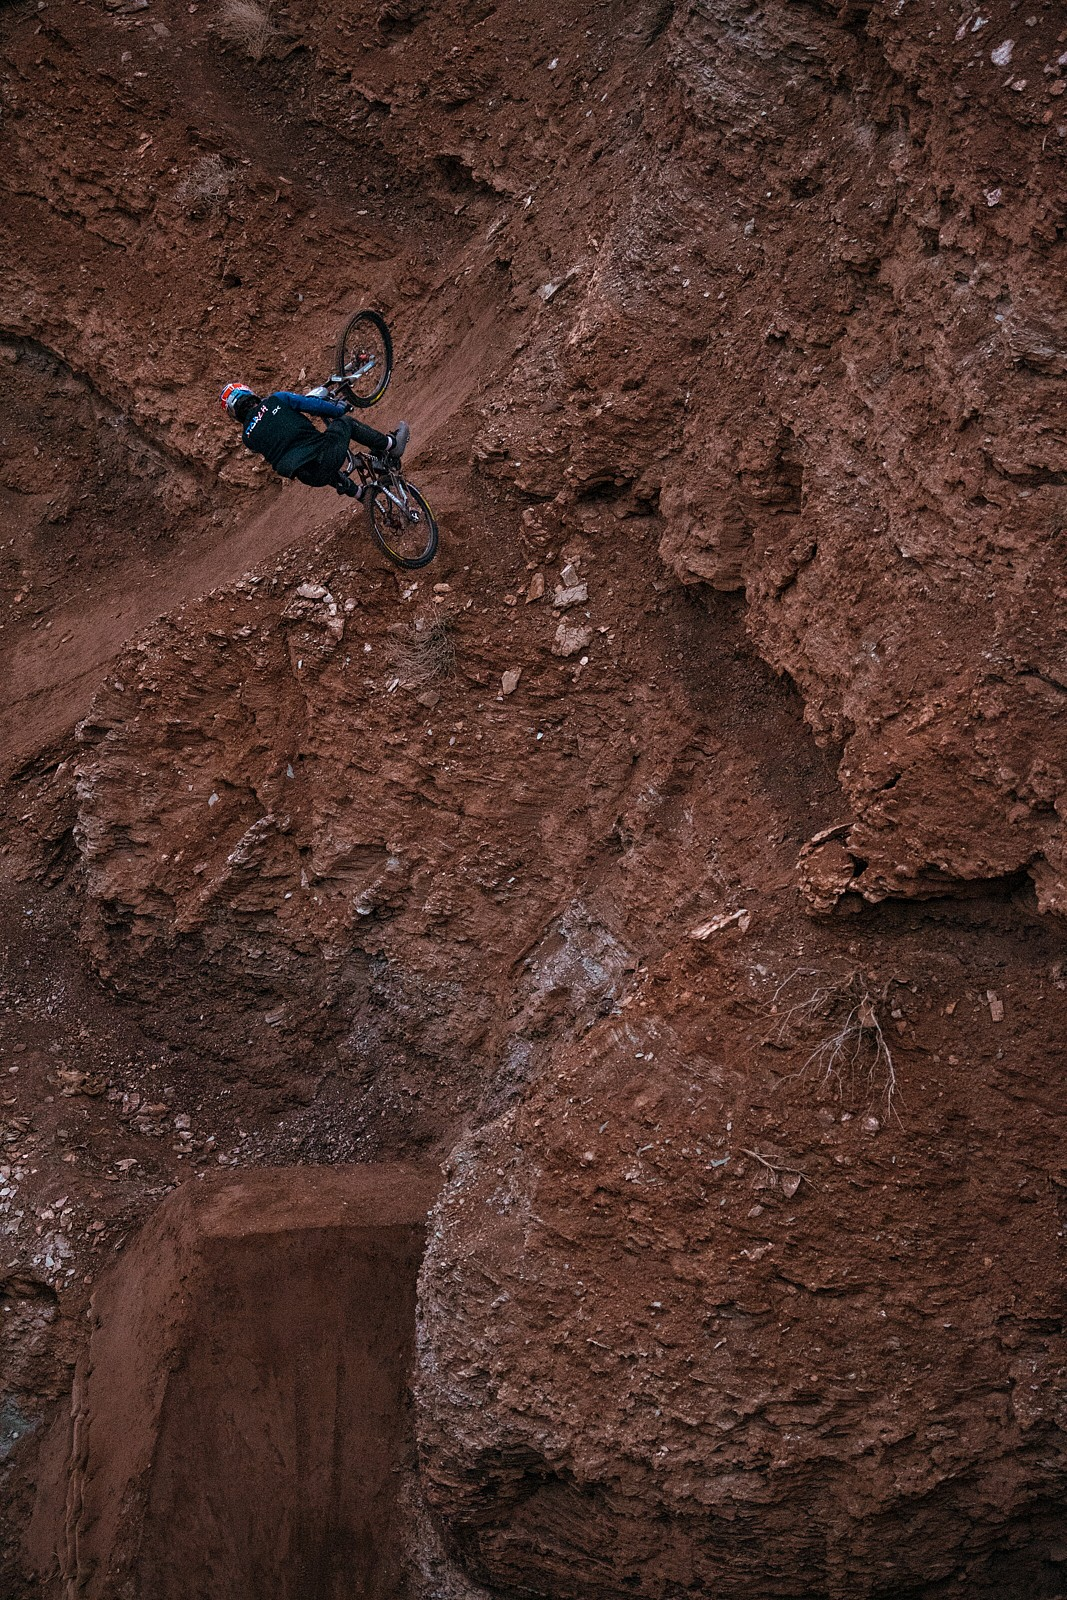 Carson Storch - 2021 Red Bull Rampage Photos - Mountain Biking Pictures - Vital MTB